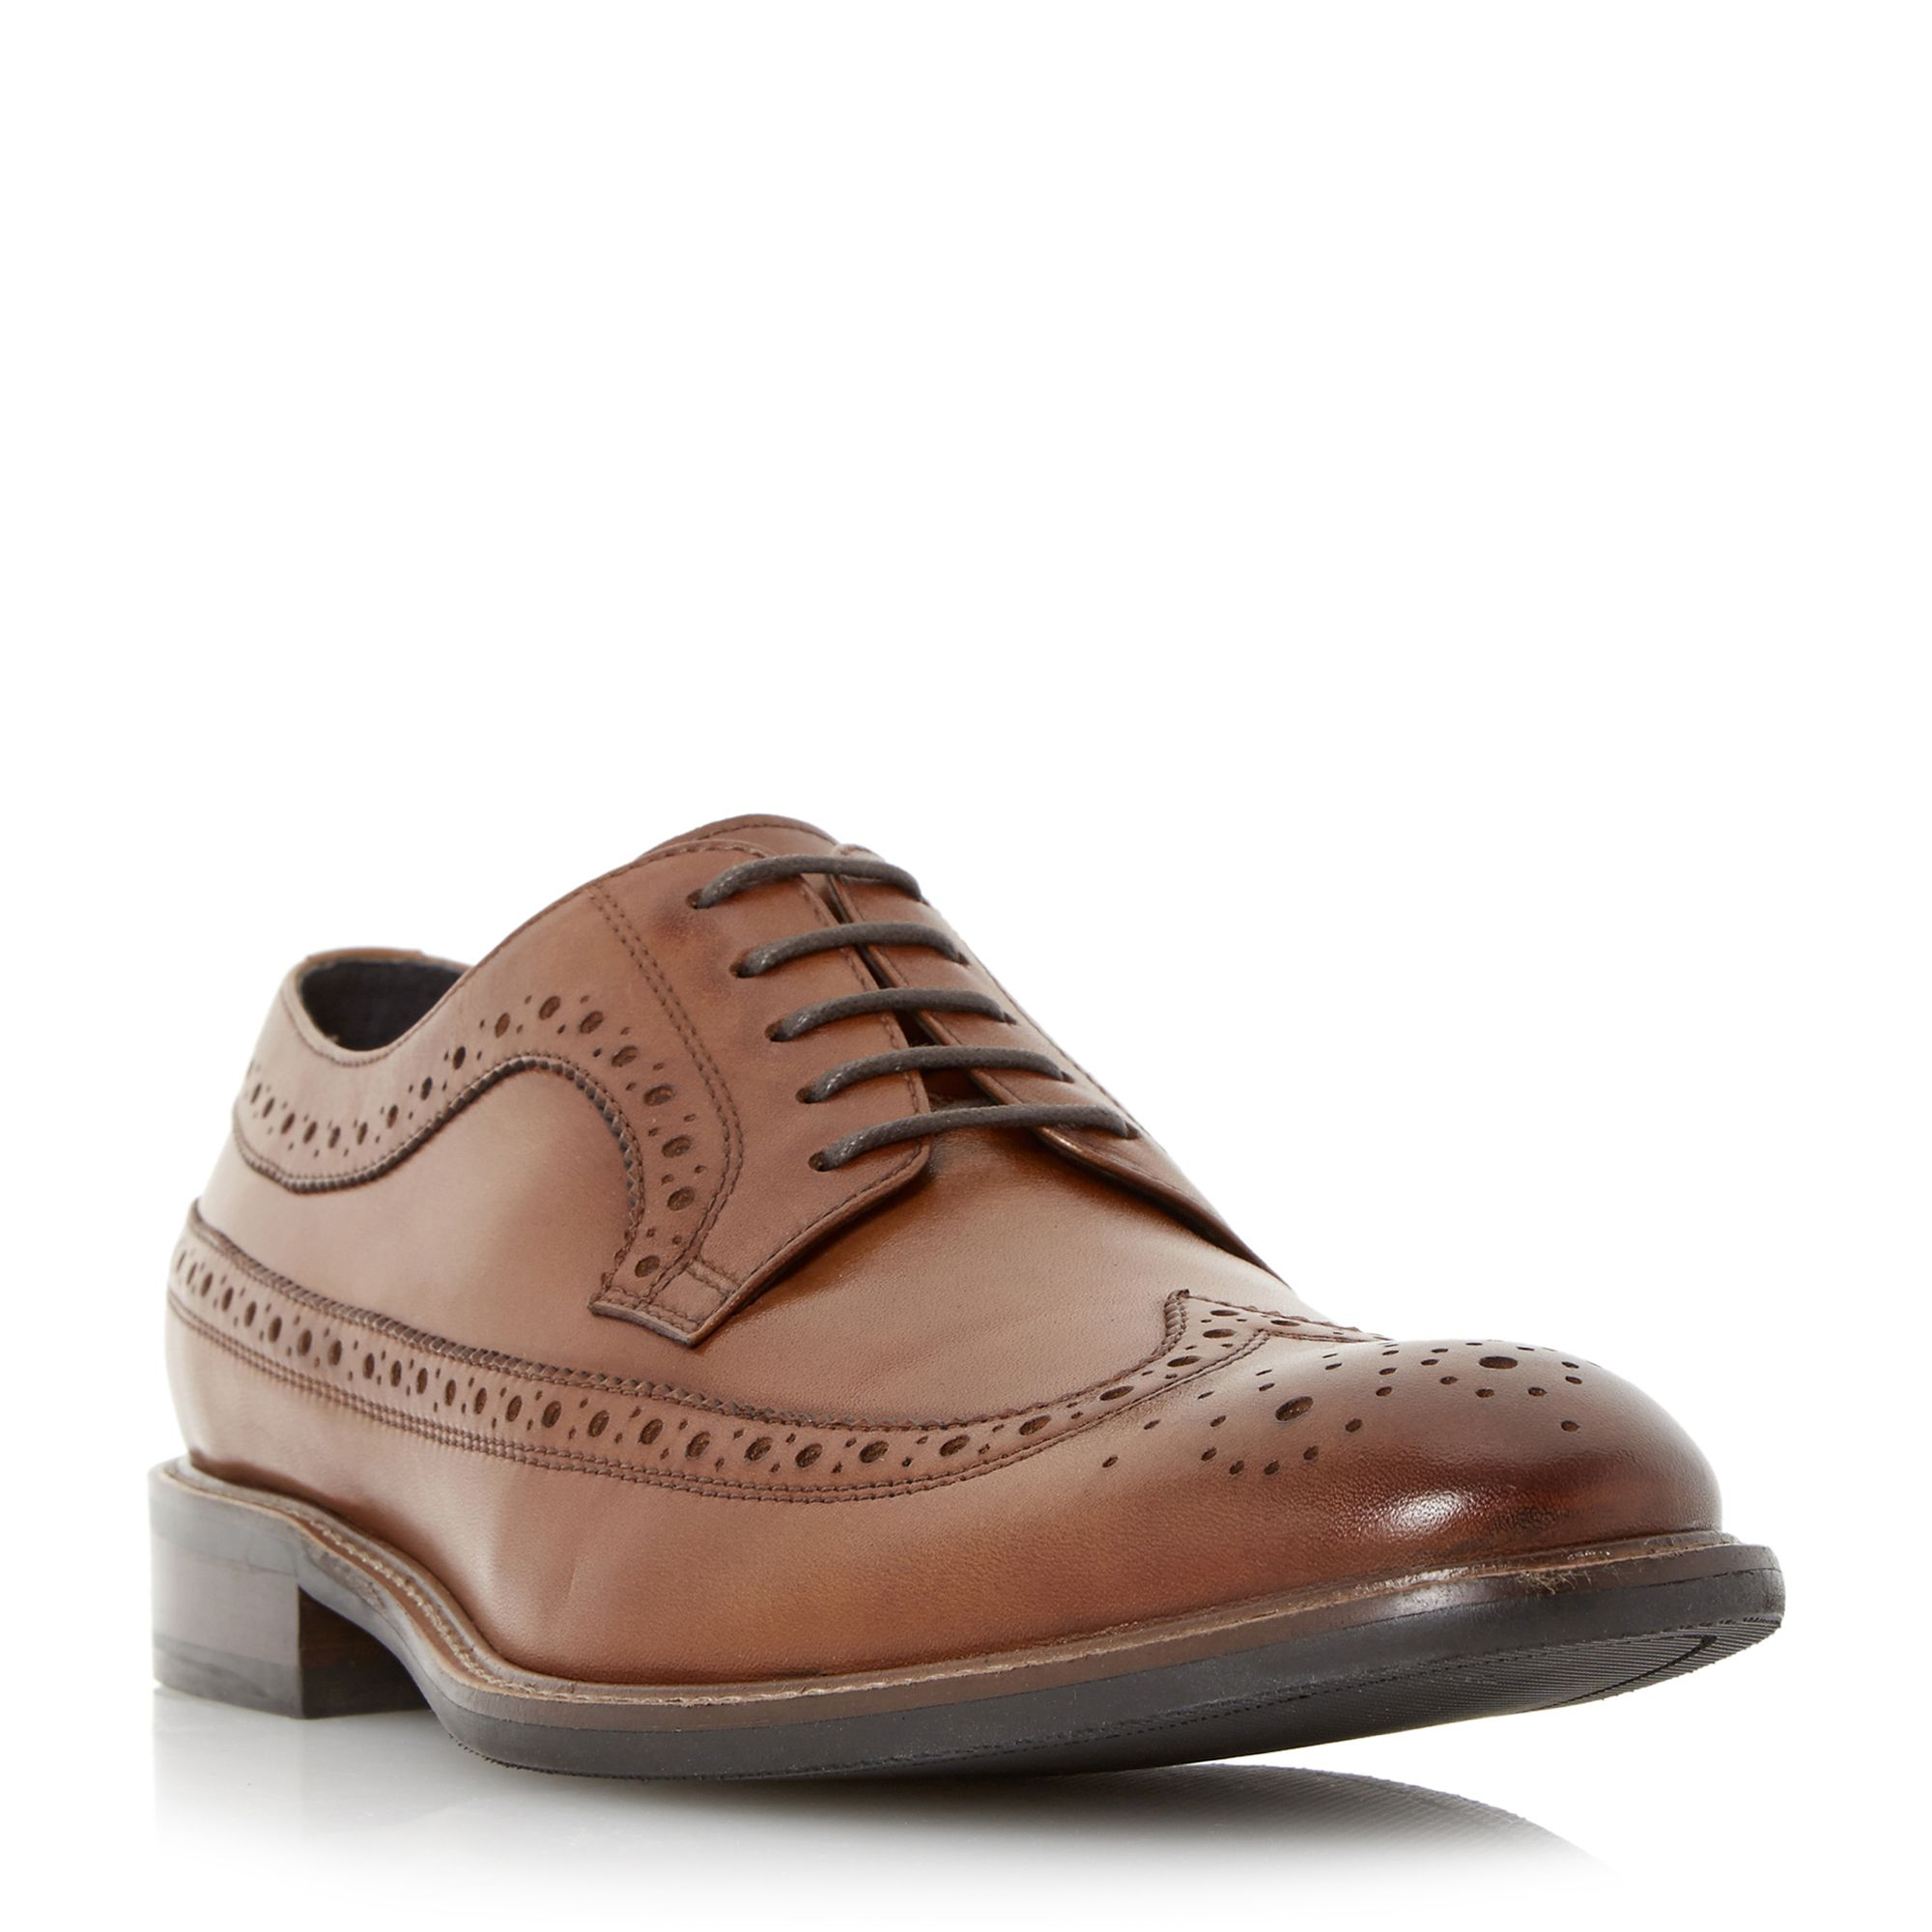 Bertie Rizzo leather brogues Brown